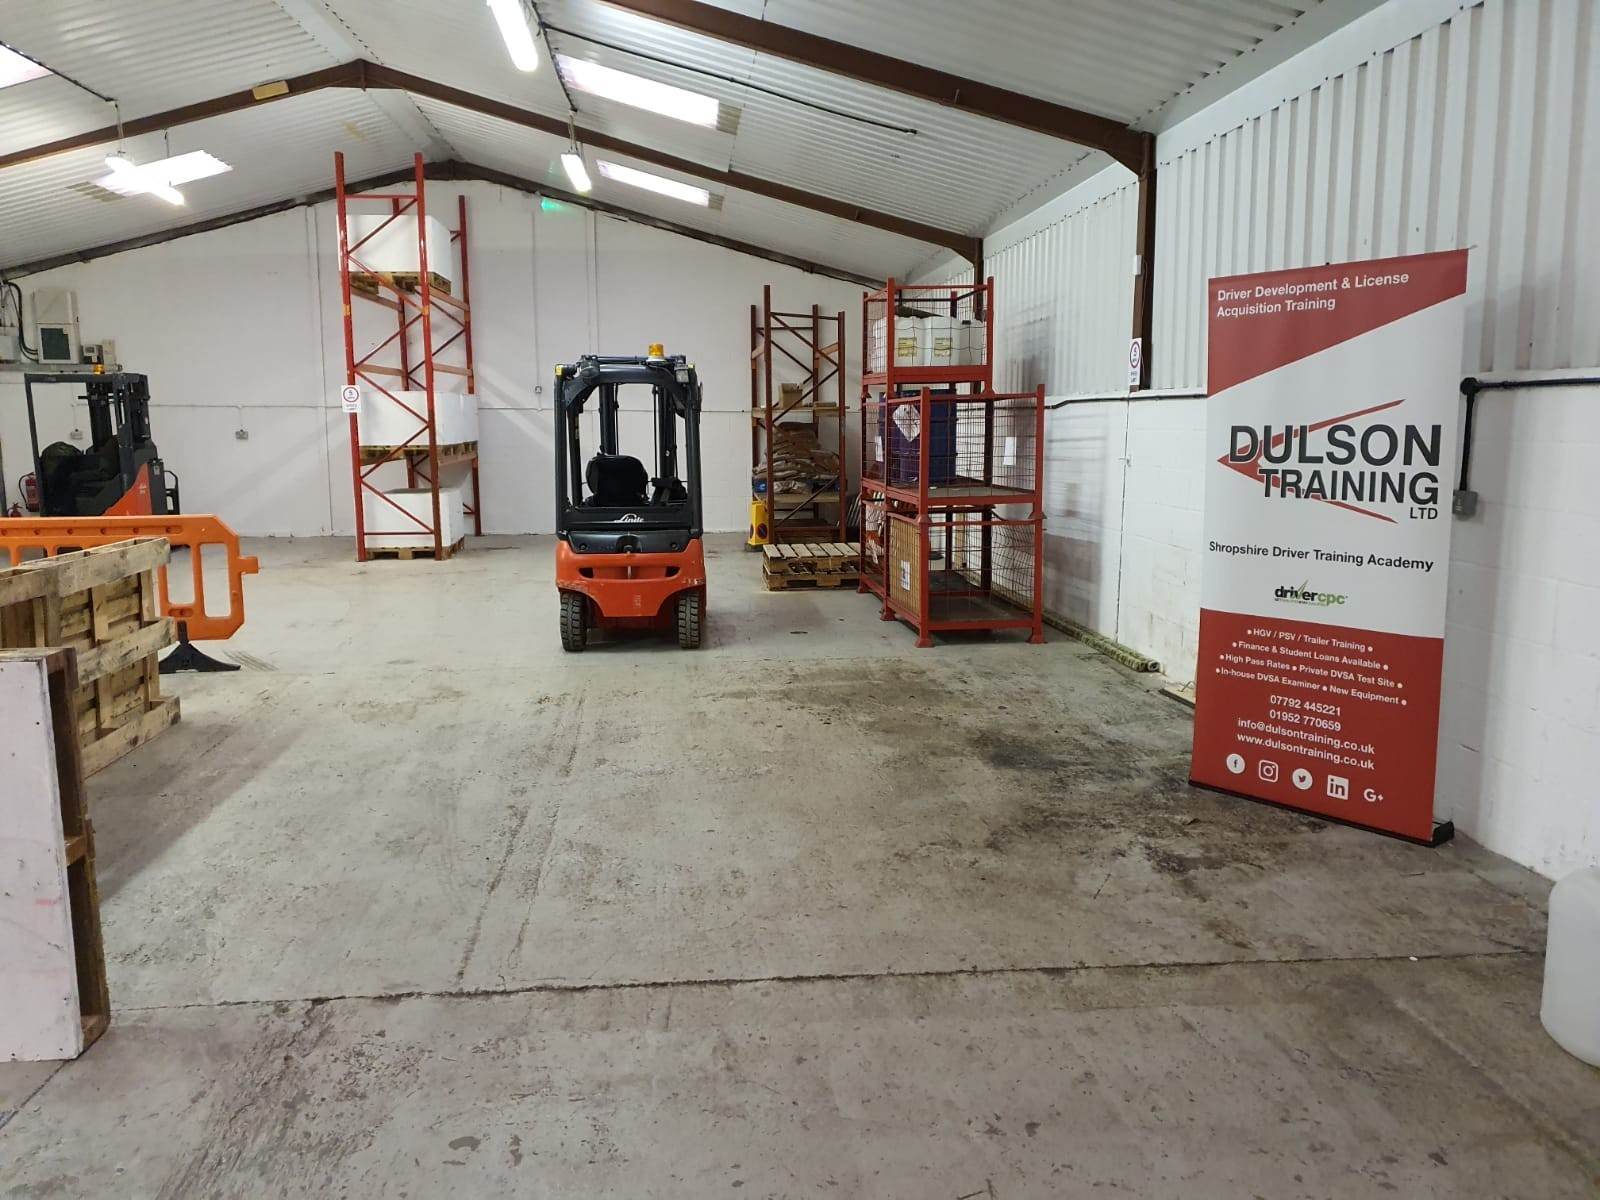 Dulson Training are Lifting Forklift Training Standards